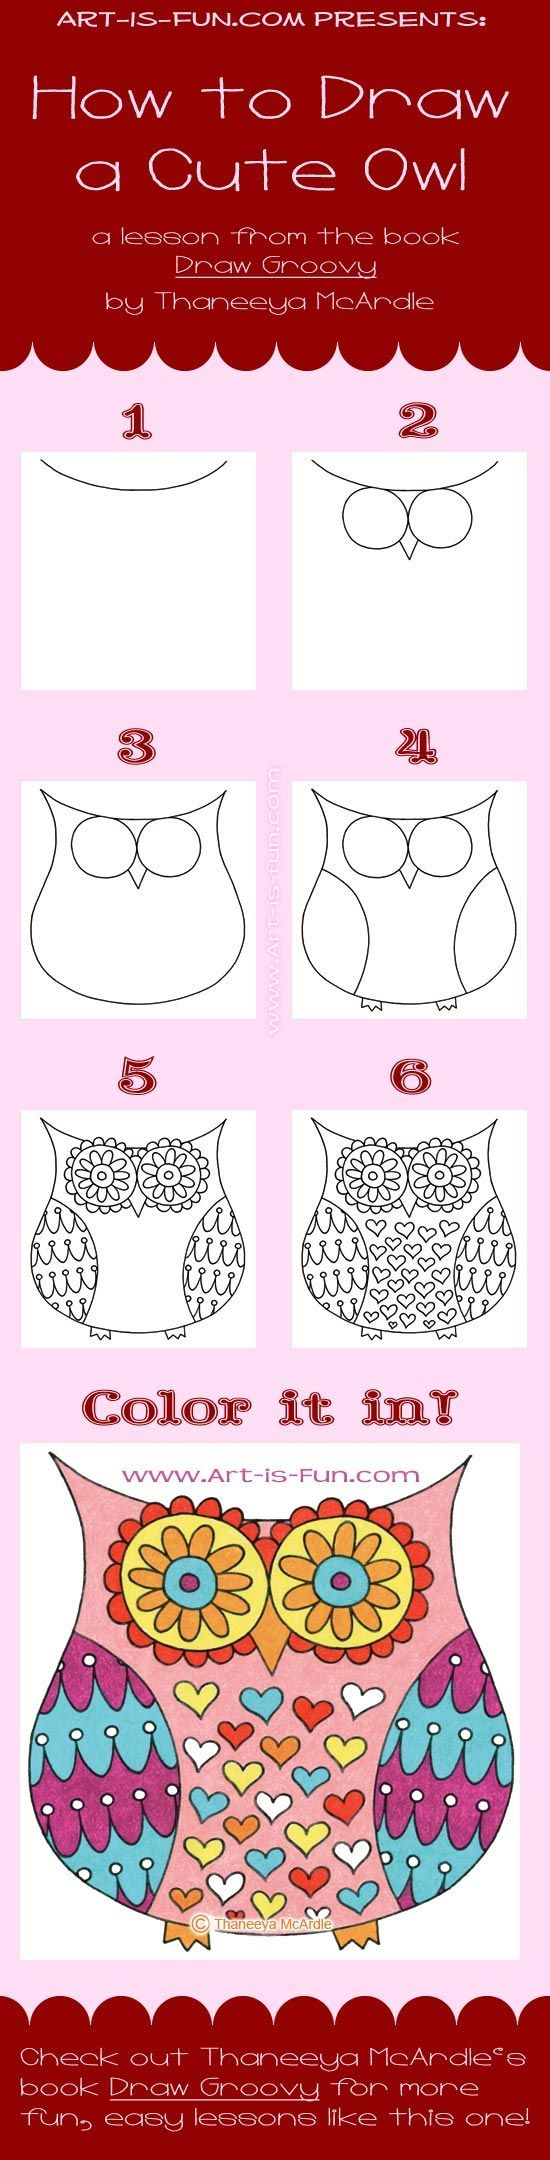 cool diy tutorial for drawing abstrack owl great page www art is